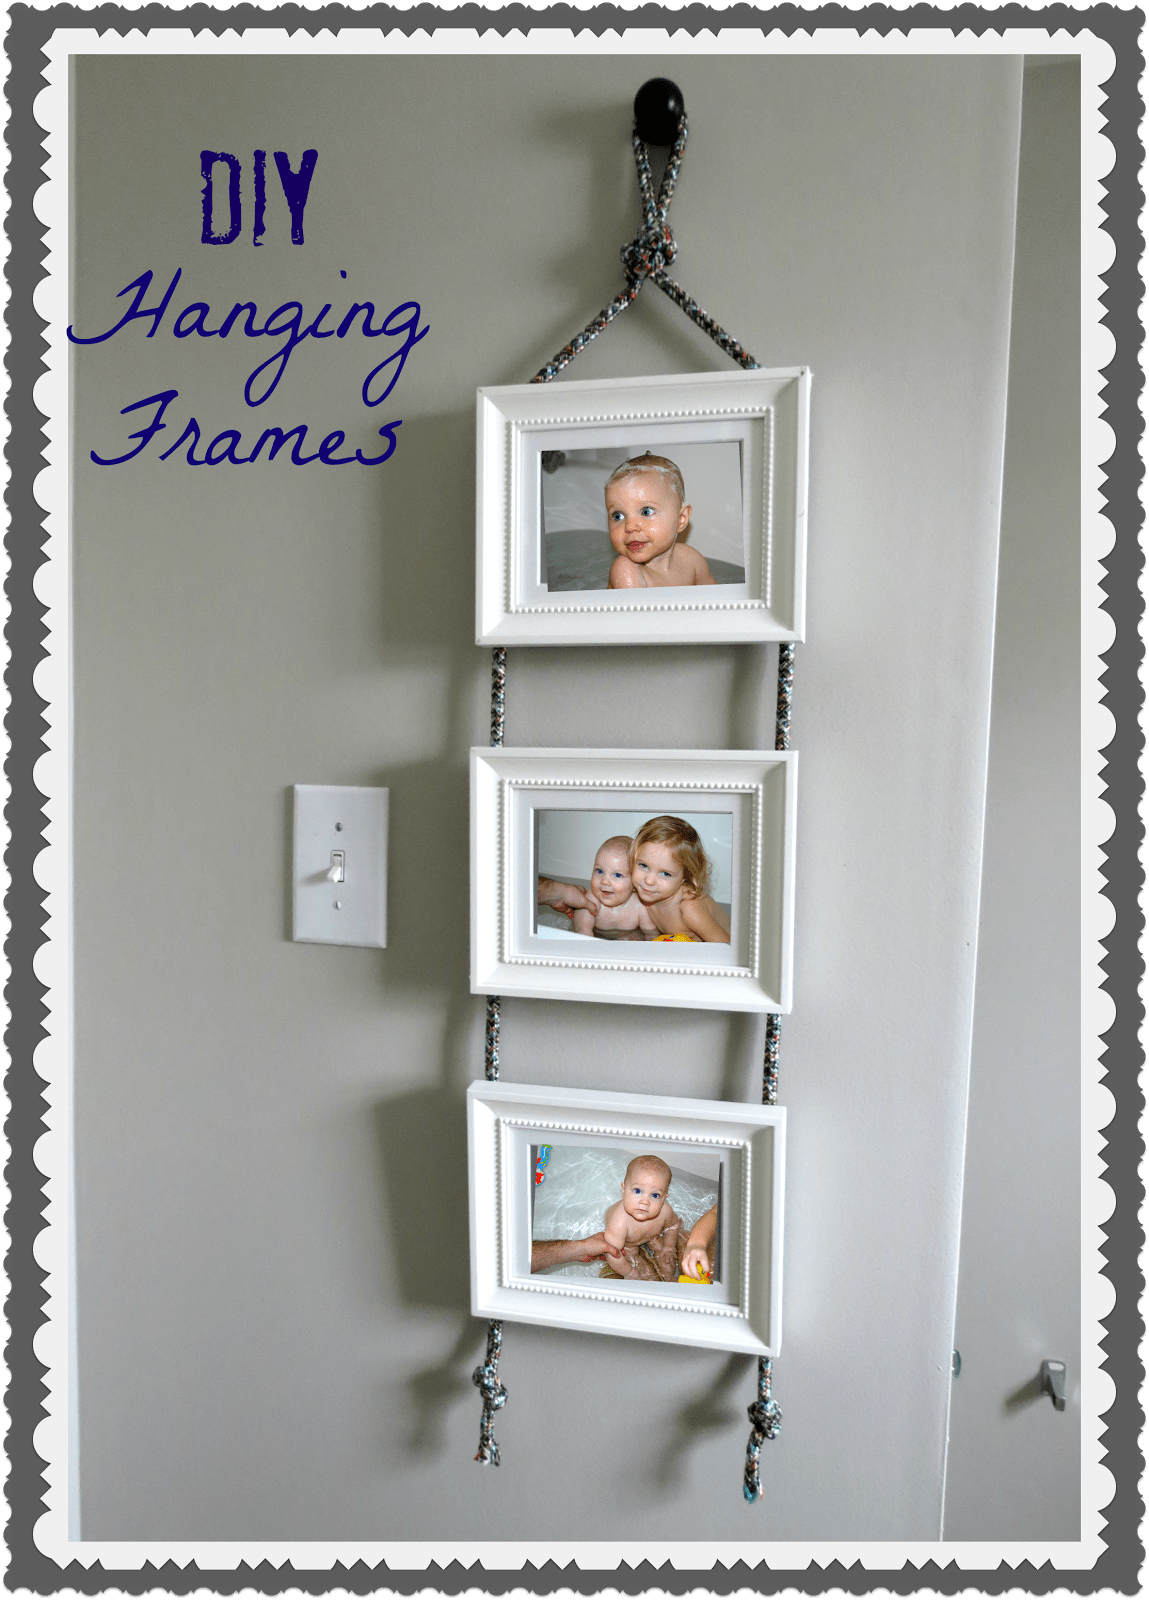 Diy hanging frames tutorial tatertots and jello isnt jeuxipadfo Image collections